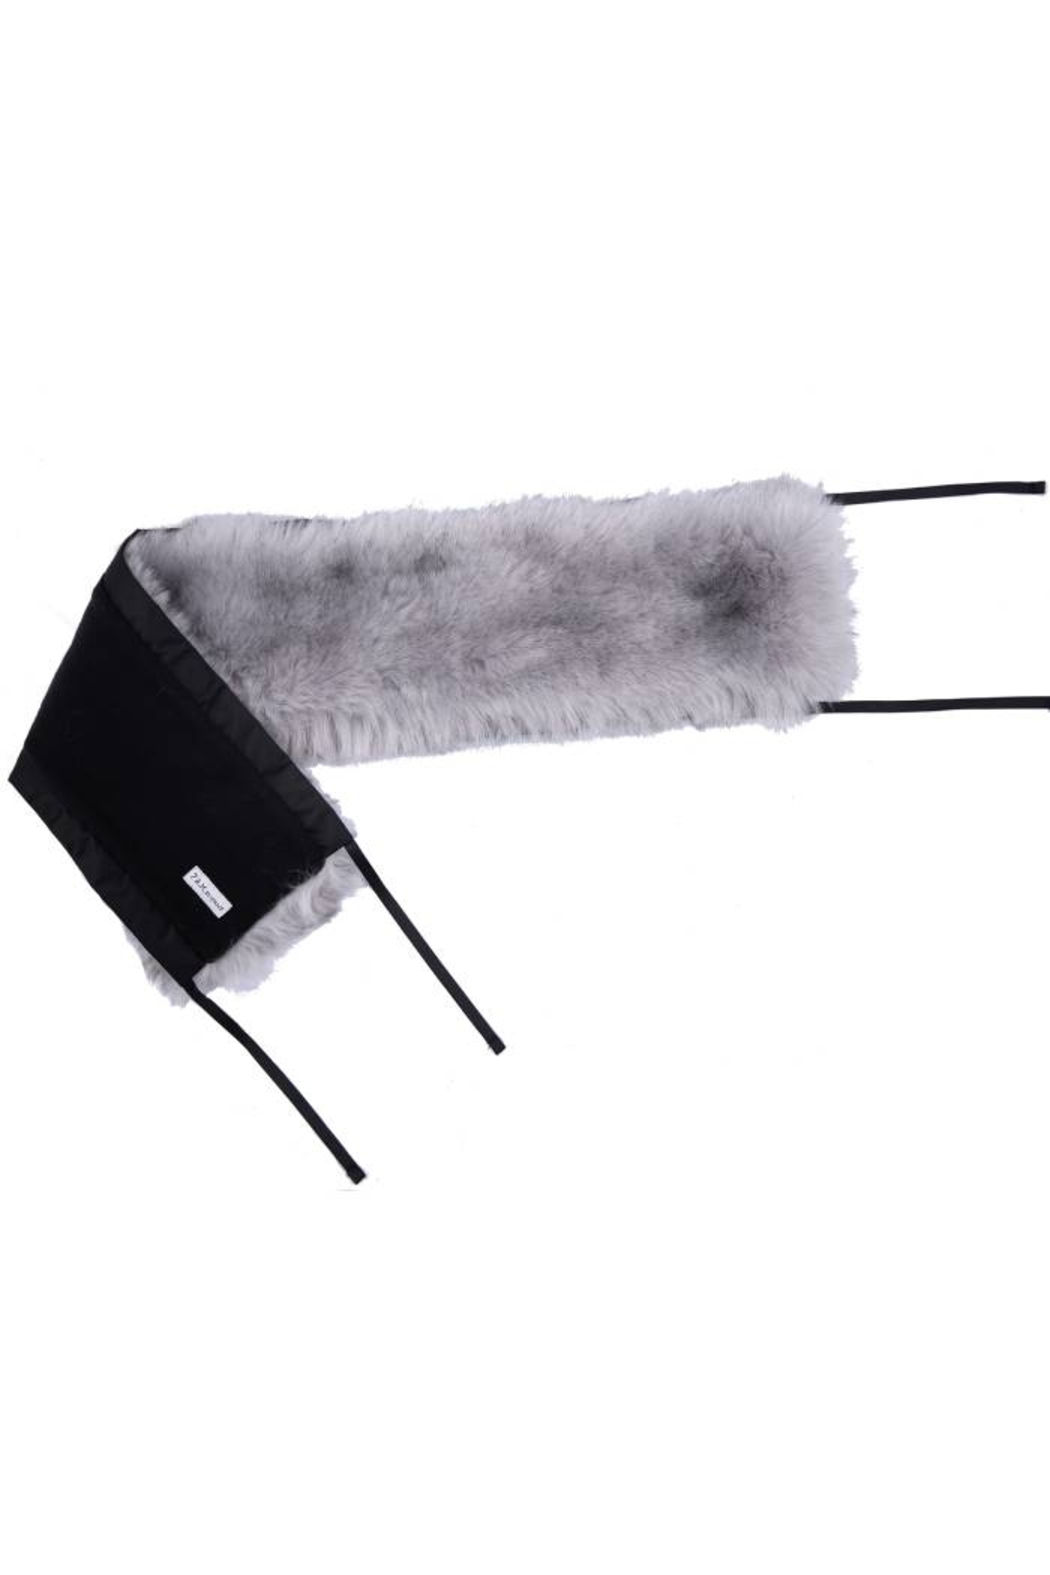 7AM Enfant 7 AM Enfant Faux Fur Marquee Tundra Canopy For Baby Carrier Or Stroller - Main Image